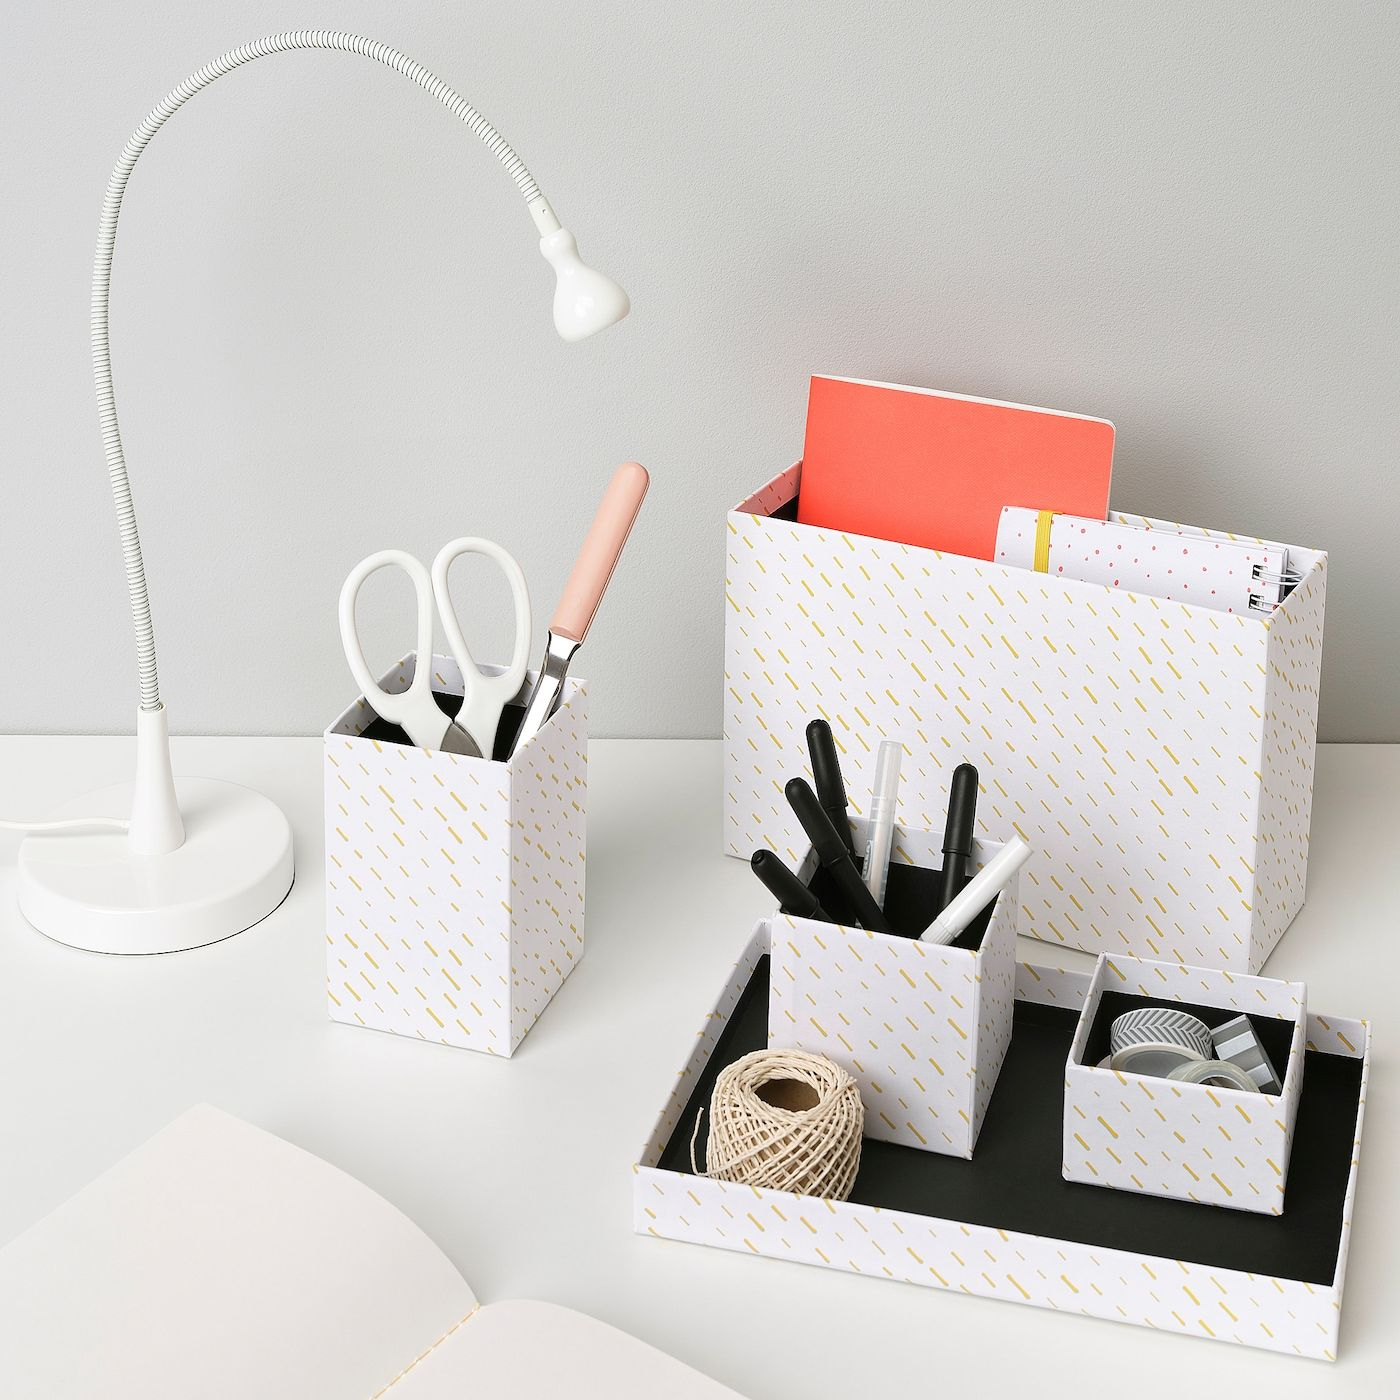 Shop For Furniture Home Accessories More Home Office Organization Home Office Design Desk Organization